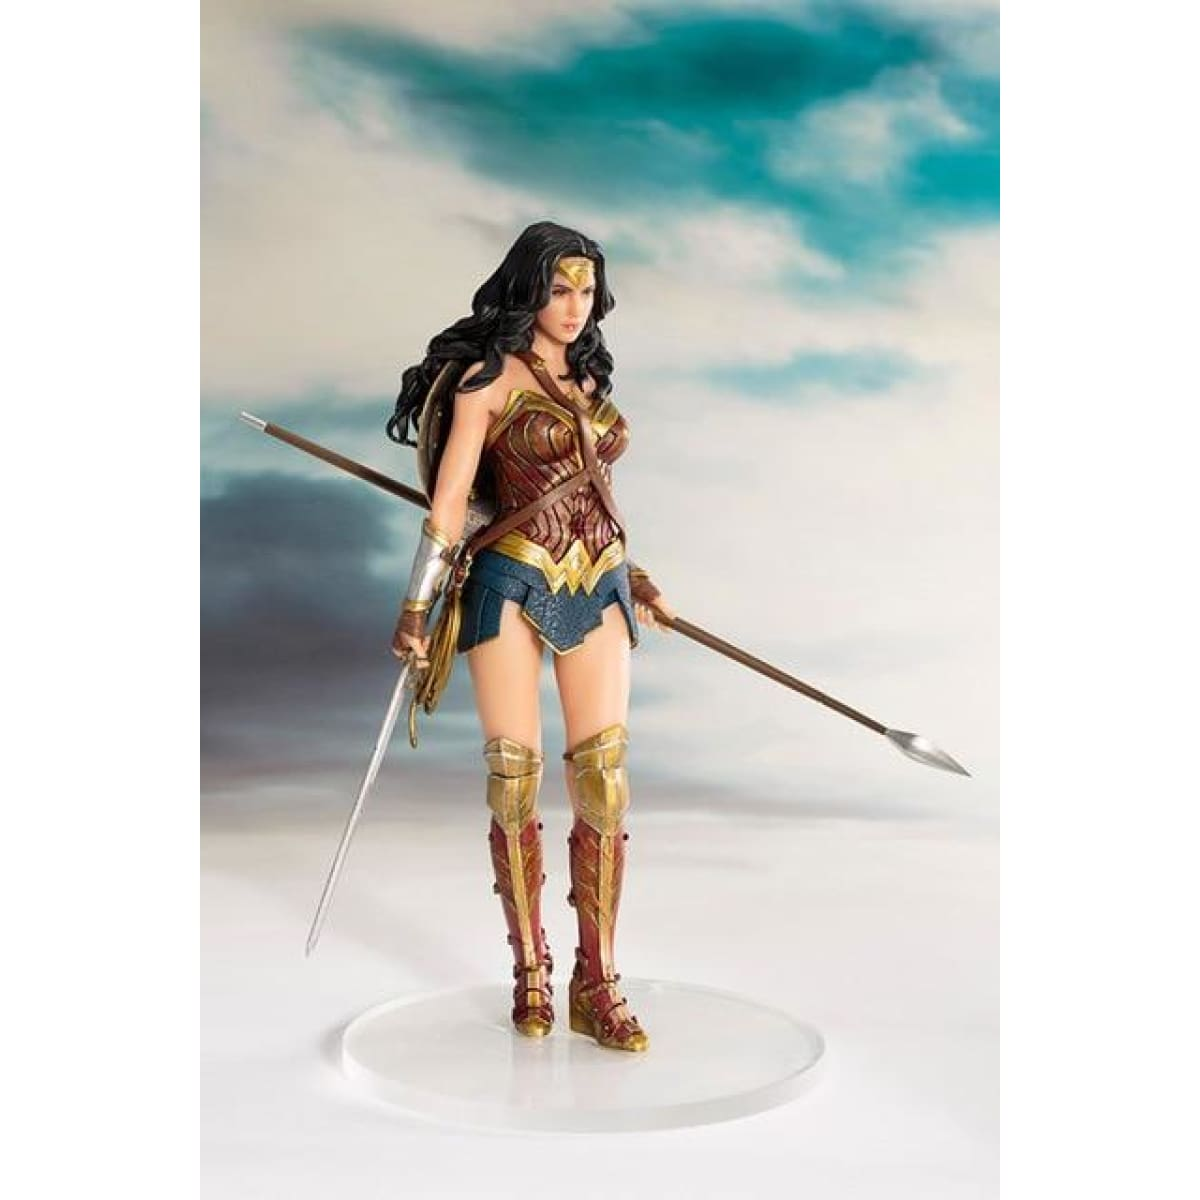 ARTFX+ Justice League The Flash Action Figure Batman The Dark Knight Wonder Woman Superman Action Comics PVC Collection Model - wonder woman